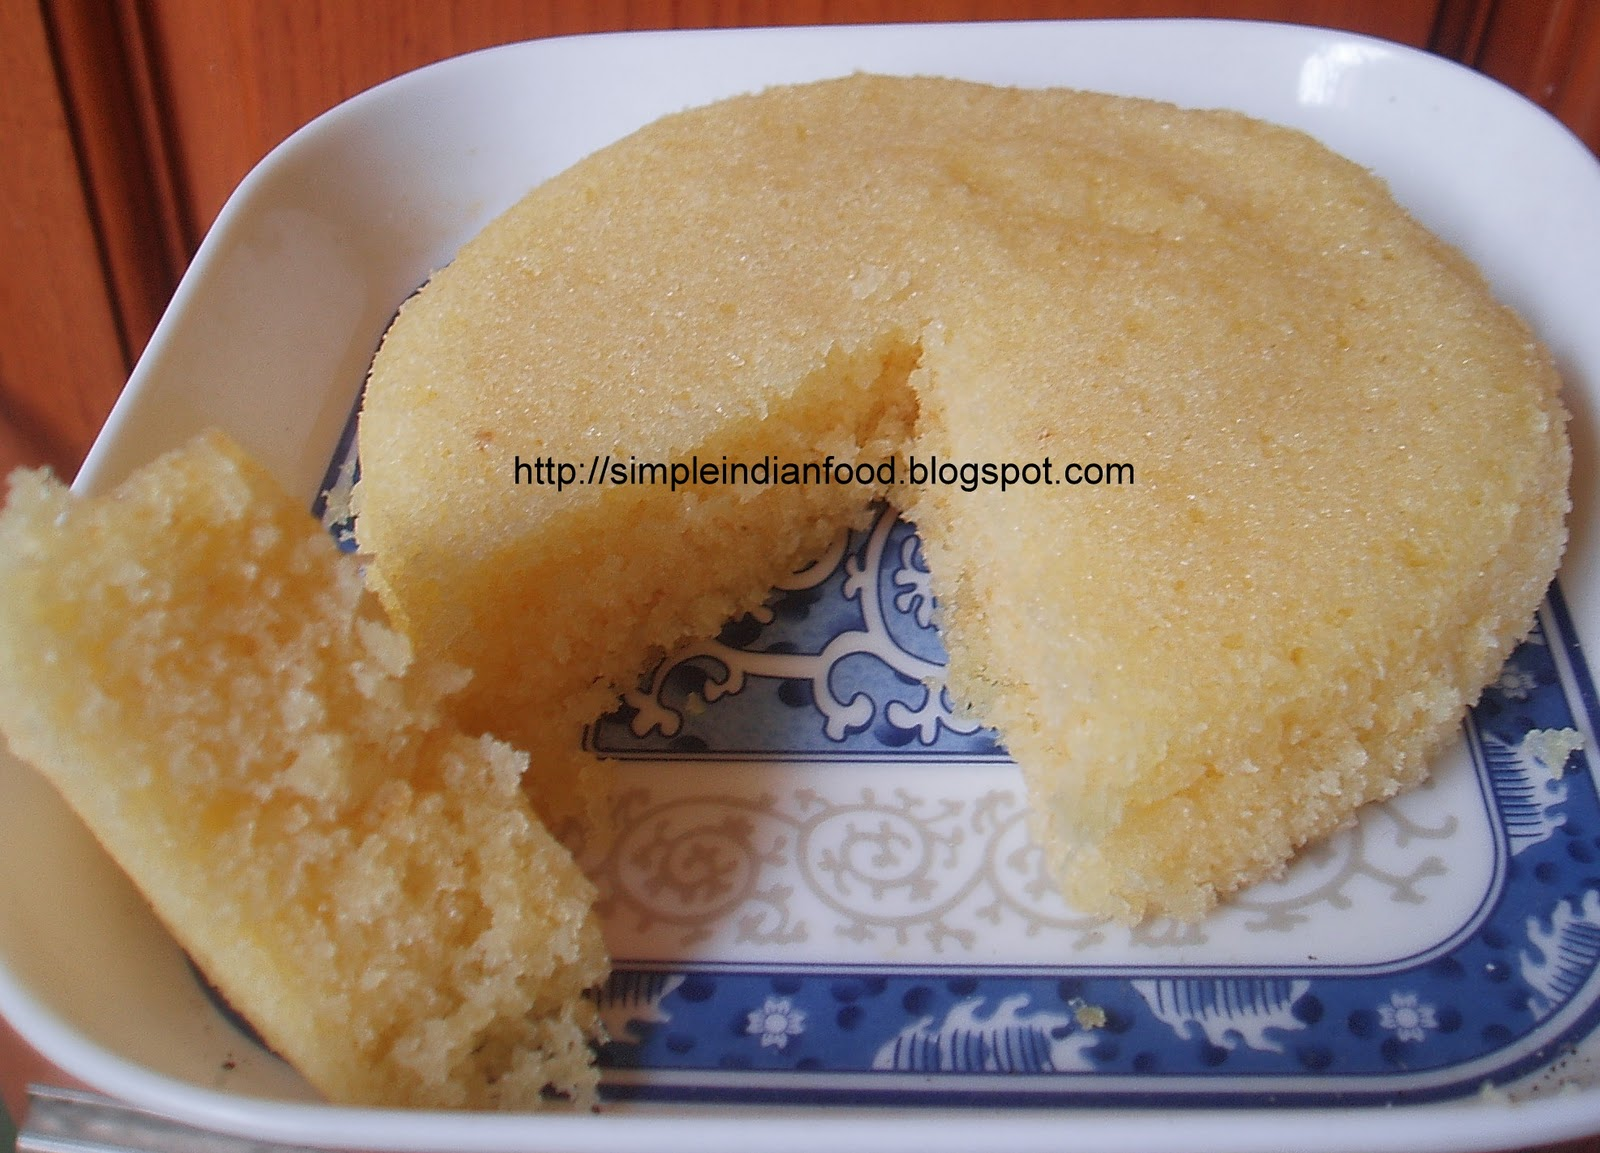 Cake Recipes In Telugu Without Oven: How To Make Vanilla Cake Without Oven In Hindi